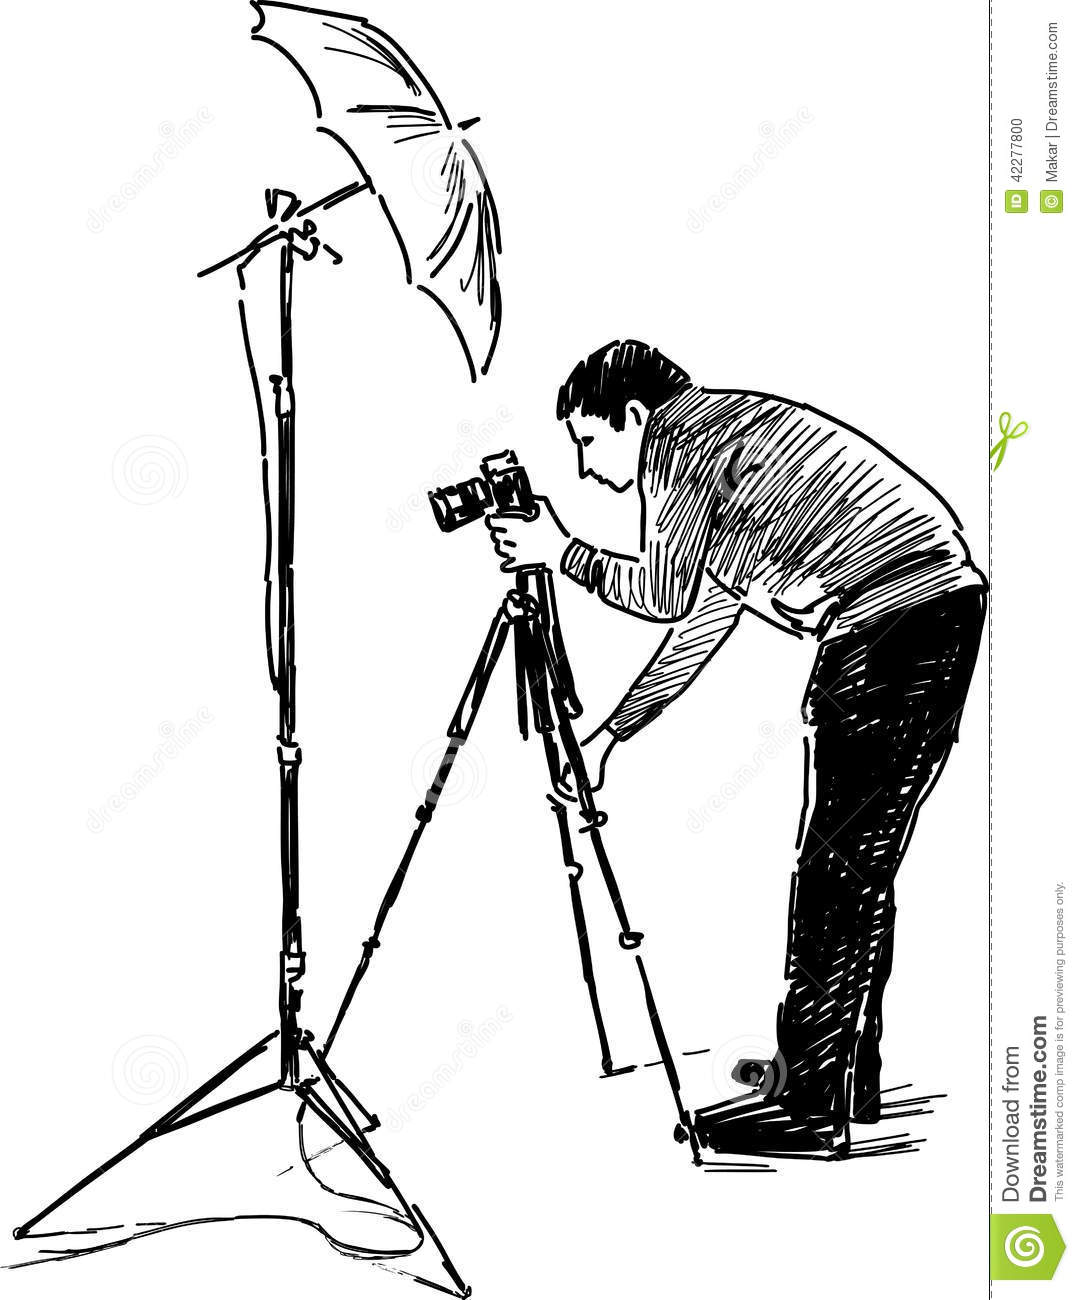 Sketch Of A Photographer At Work Stock Vector